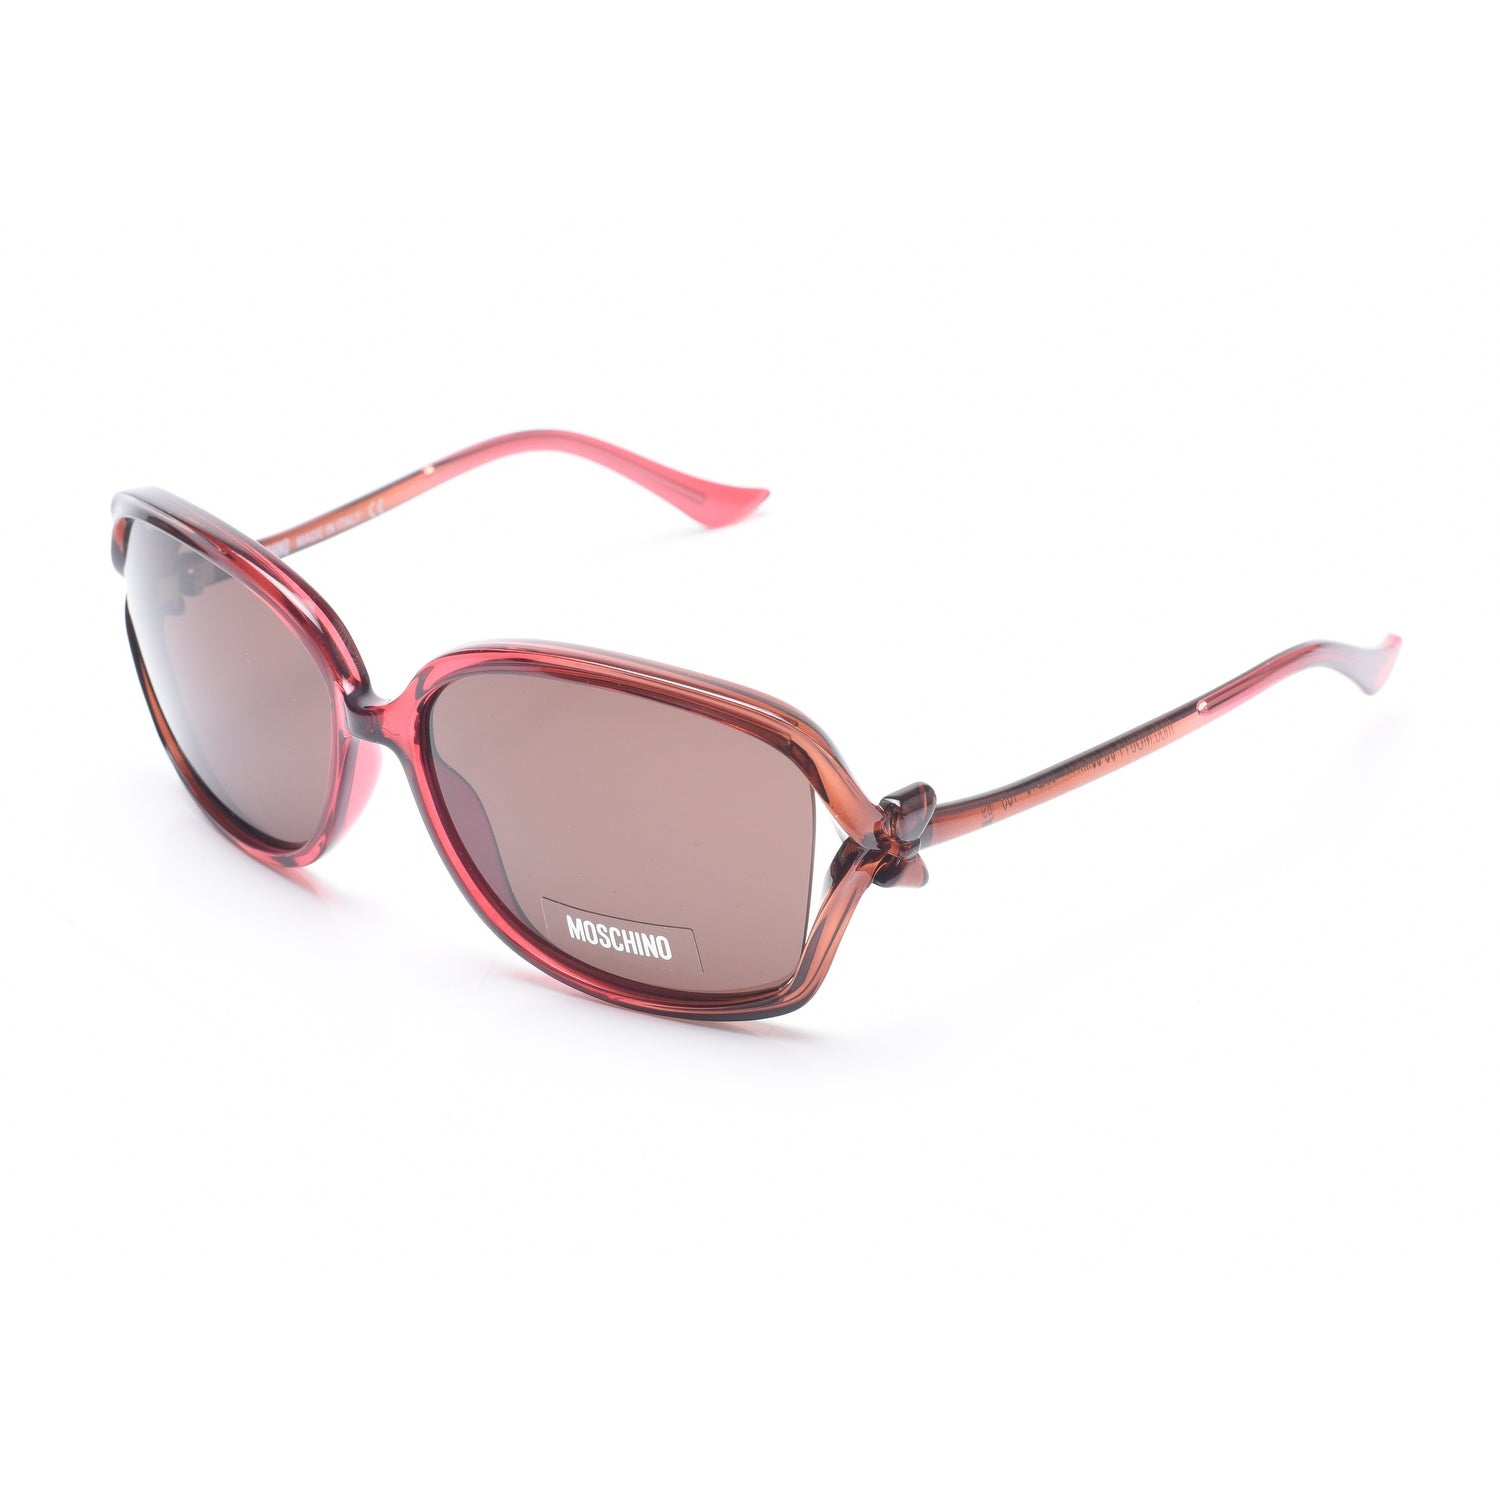 ef75f32e2 Shop Moschino Women's Bow Detailed Oversized Sunglasses Red - Small - Free  Shipping Today - Overstock - 13405229